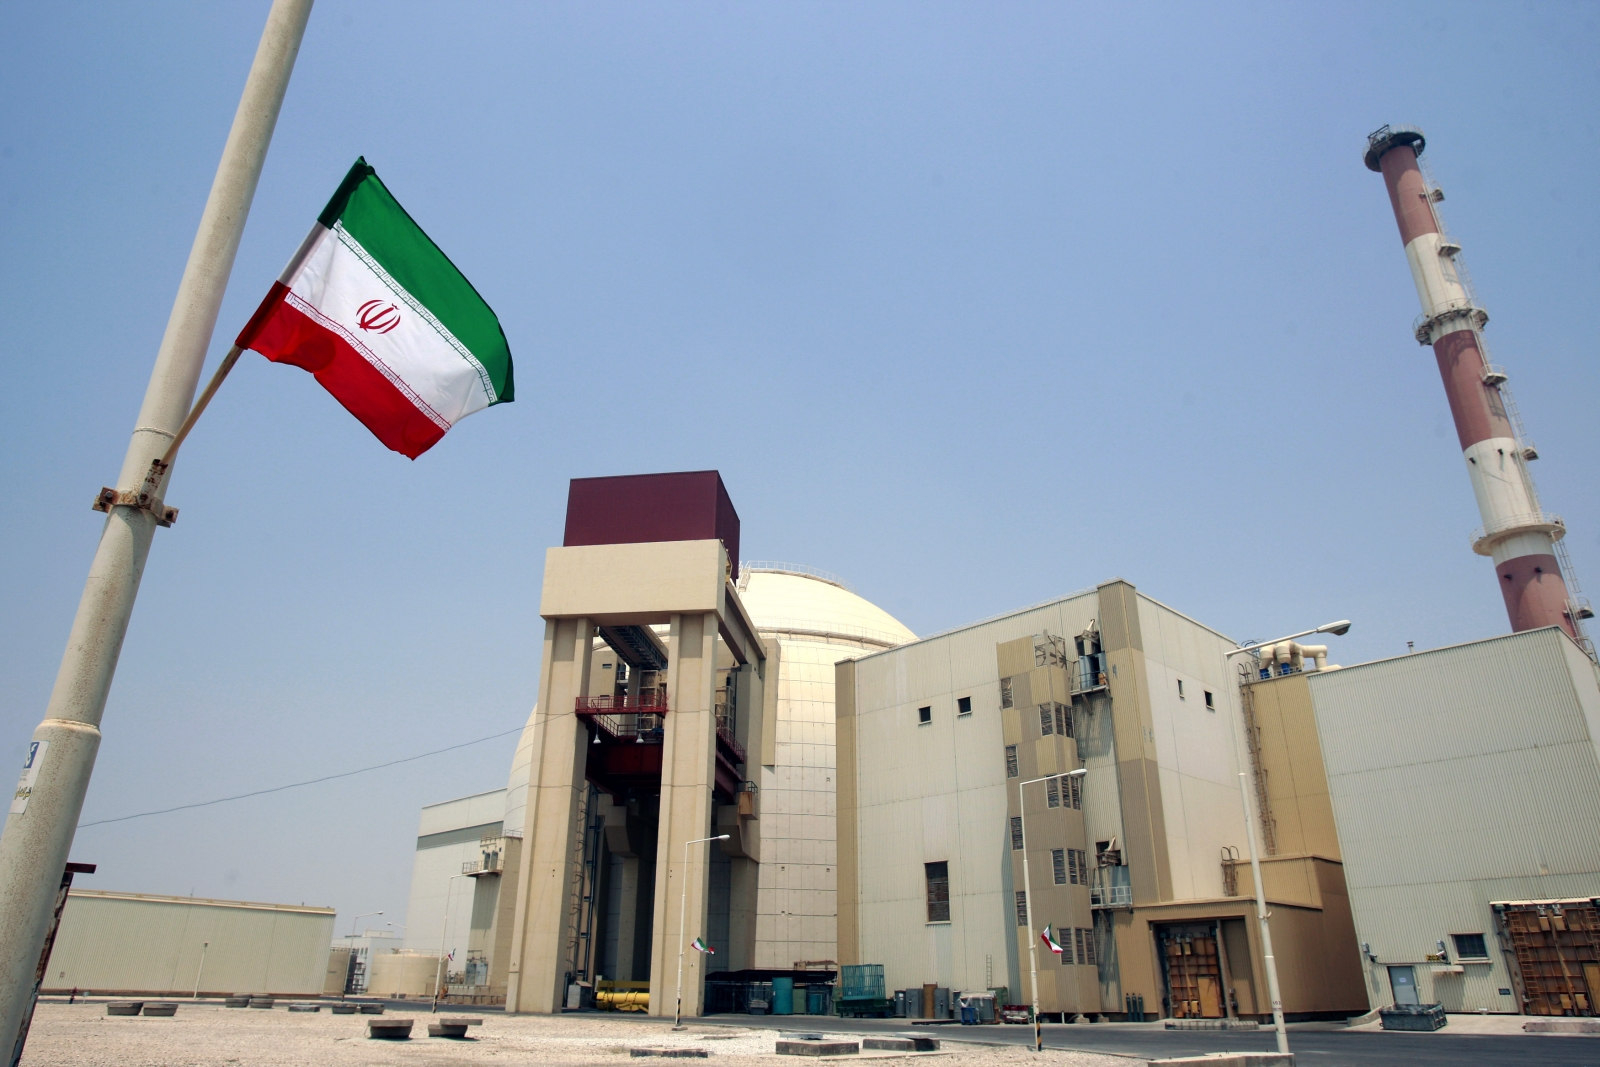 a nuclear iran Iran's nuclear program, initially cancelled after the 1979 revolution, was revived in the closing phases of the 1980-1988 war with iraq tehran wanted to guard against a future surprise analogous to iraq's repeated use of chemical weapons iran has depicted international pressure to suspend its.